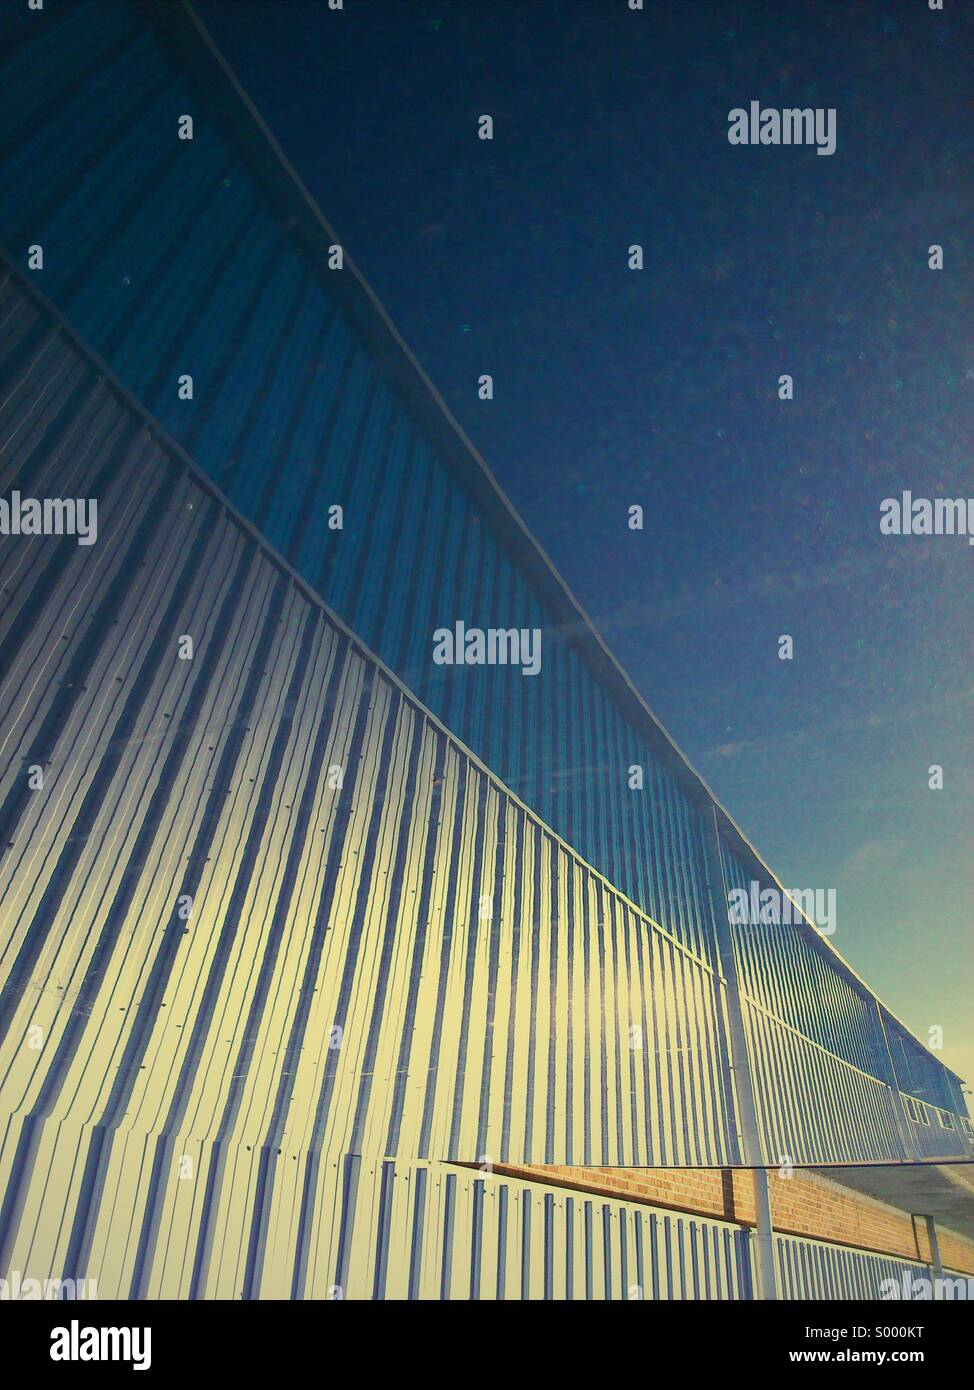 Abstract reflection of building on car roof - Stock Image